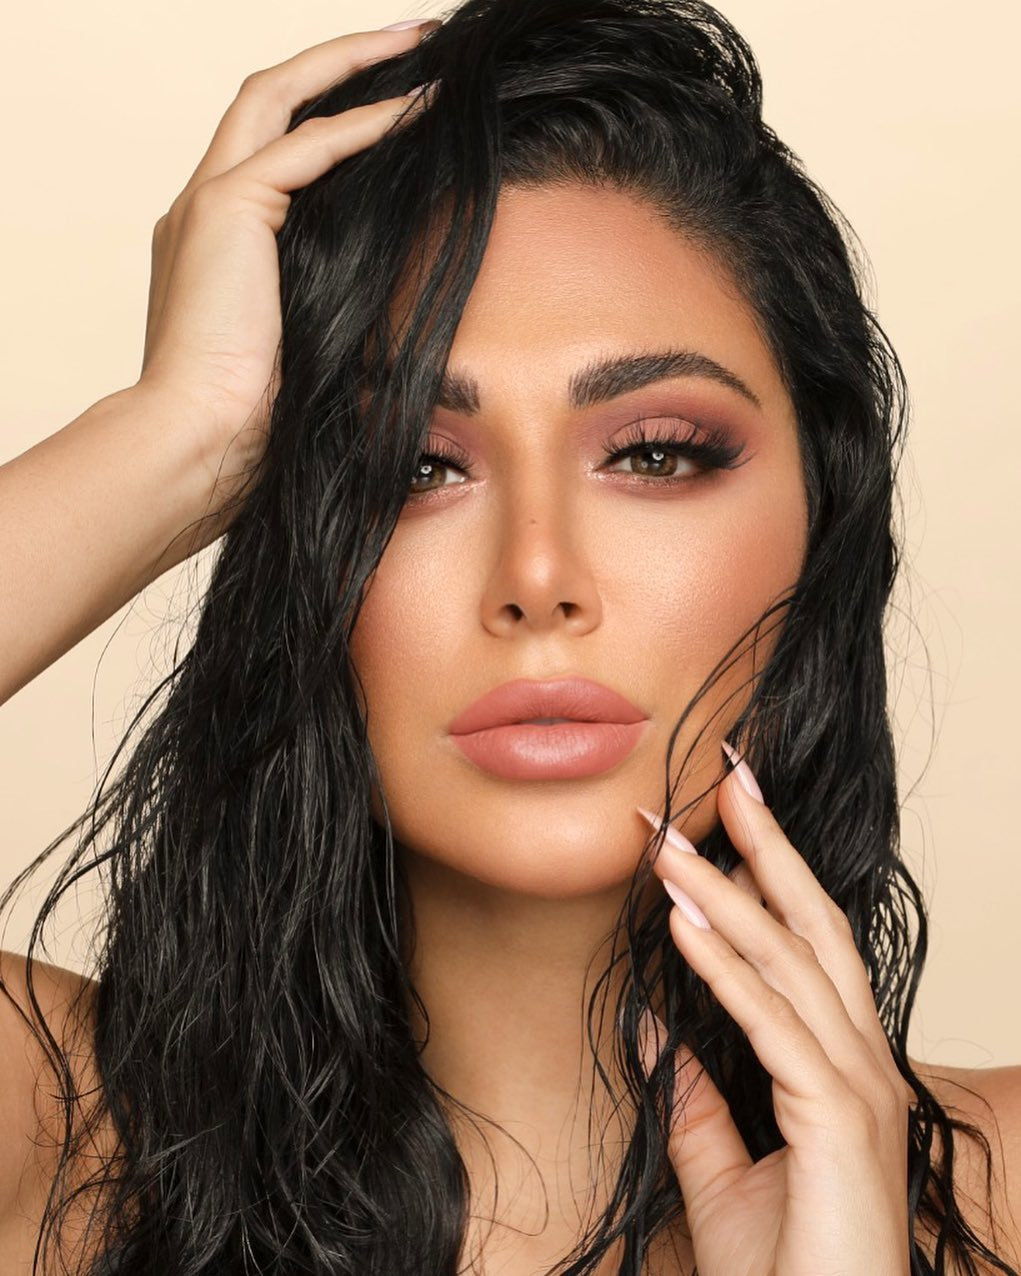 Huda Kattan: It's all about authenticity and connection